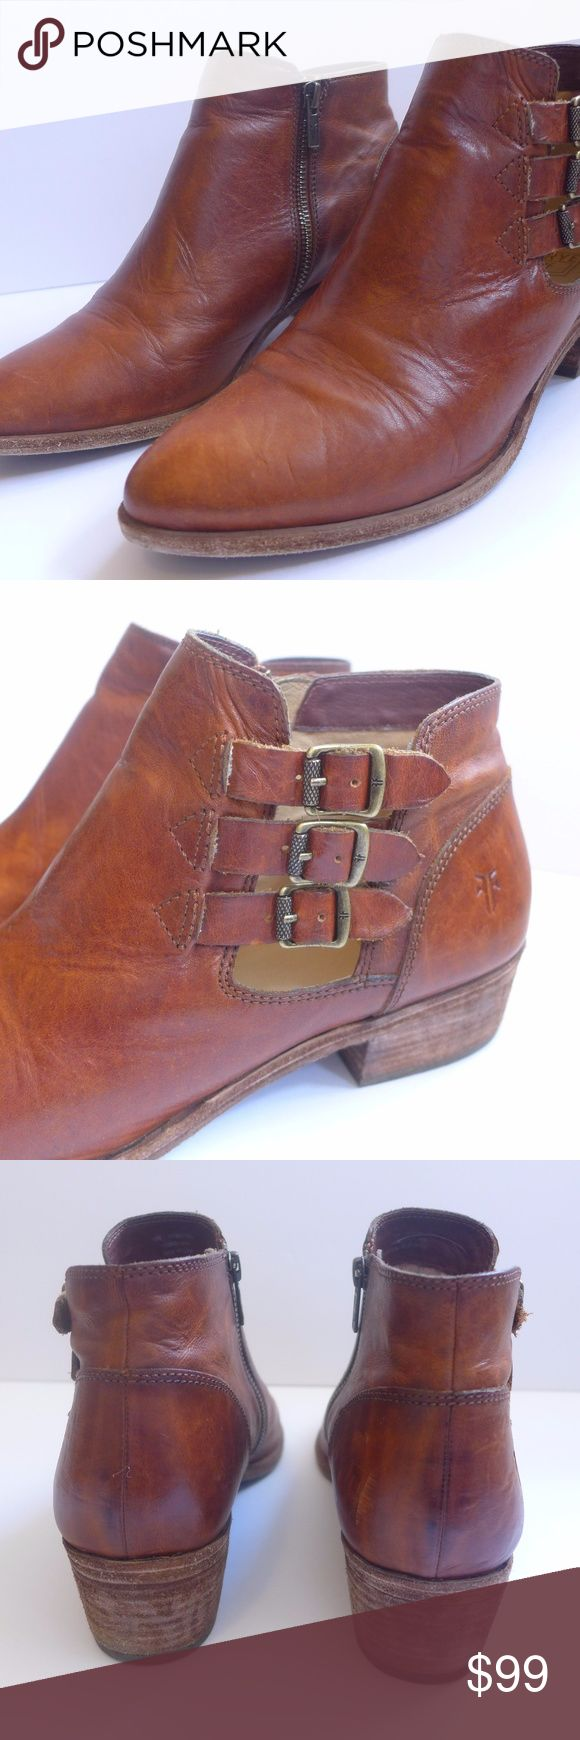 Frye Ray Belted Bootie Cognac Boots Women's 10 M L Frye Ray Belted Zip  Bootie Boots Style #: 75881 Size: 10M US Total Height 5 1/2